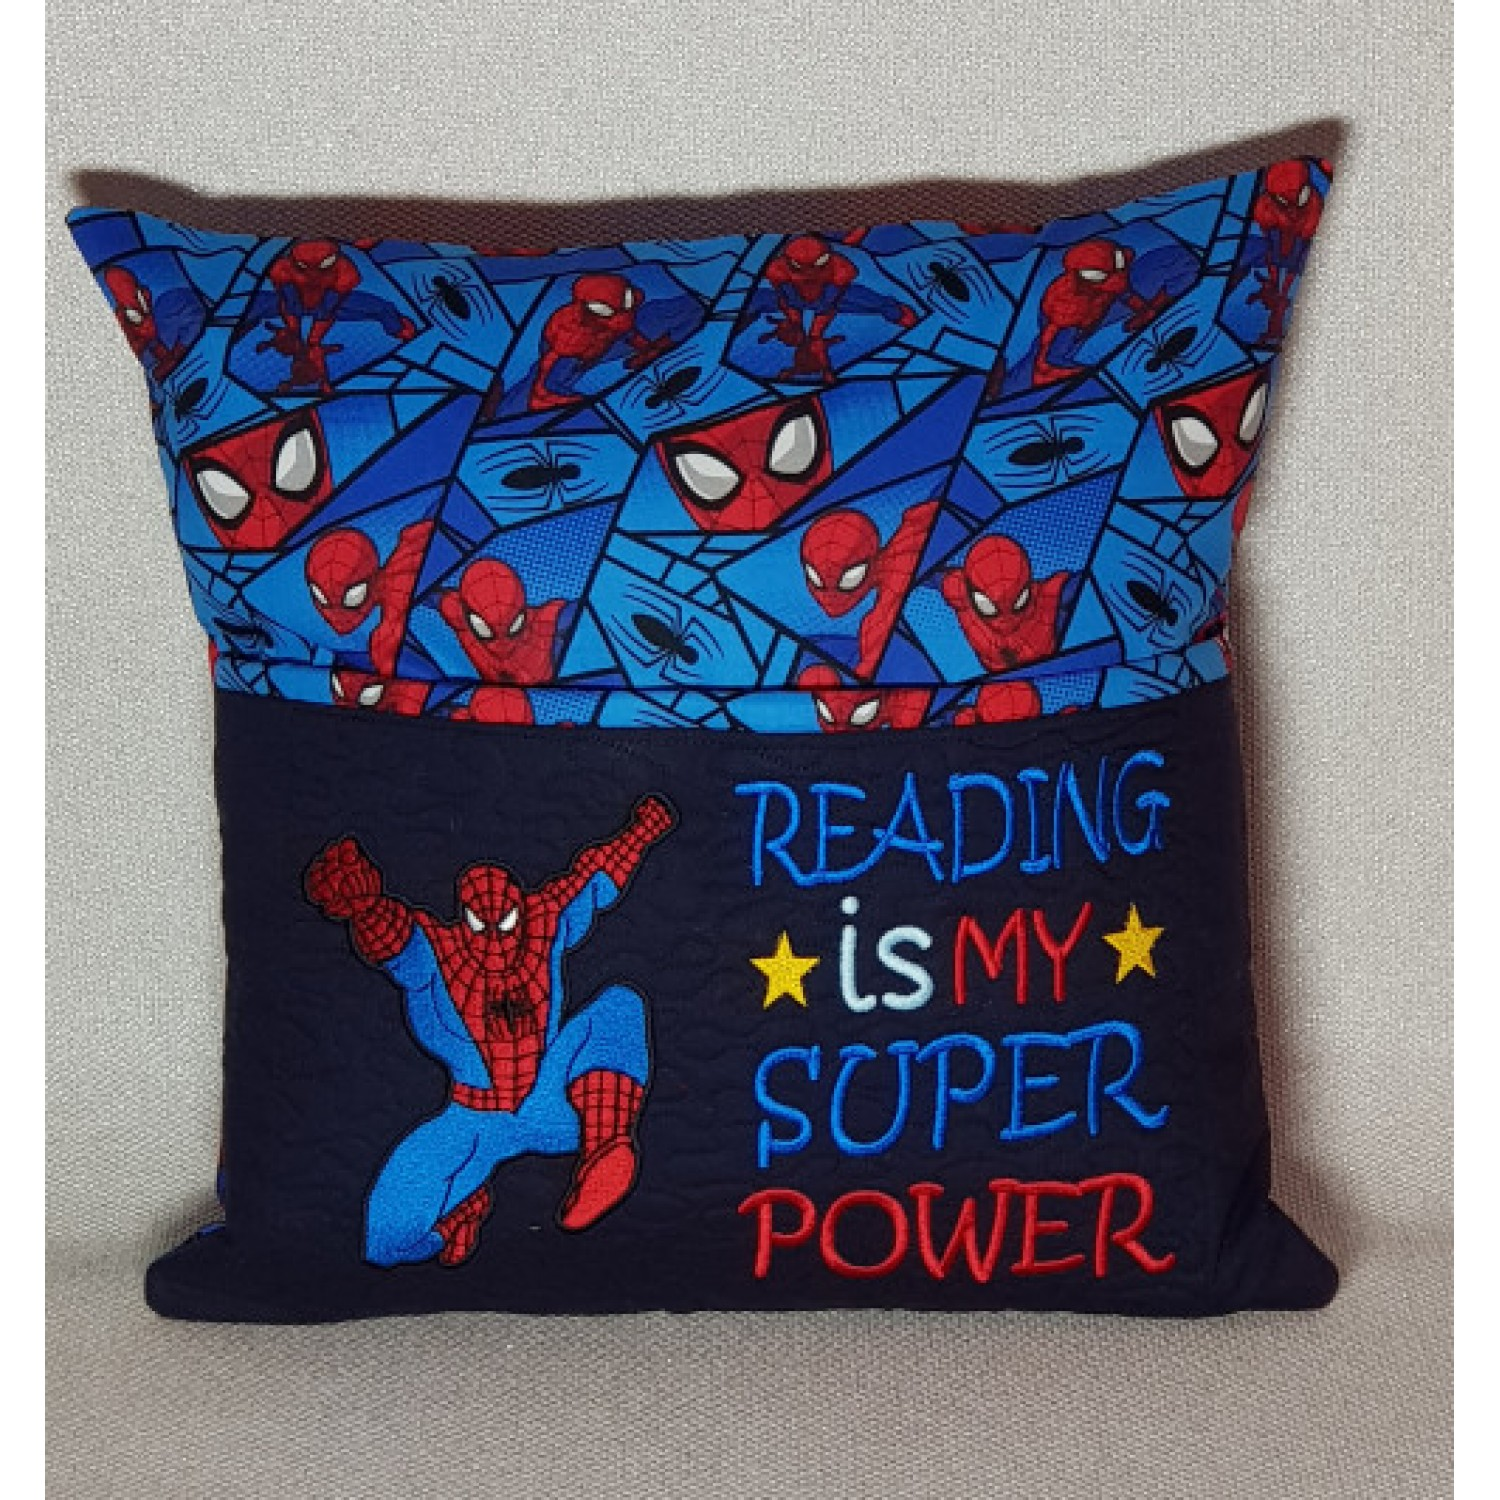 spiderman embroidery Reading is My Super power